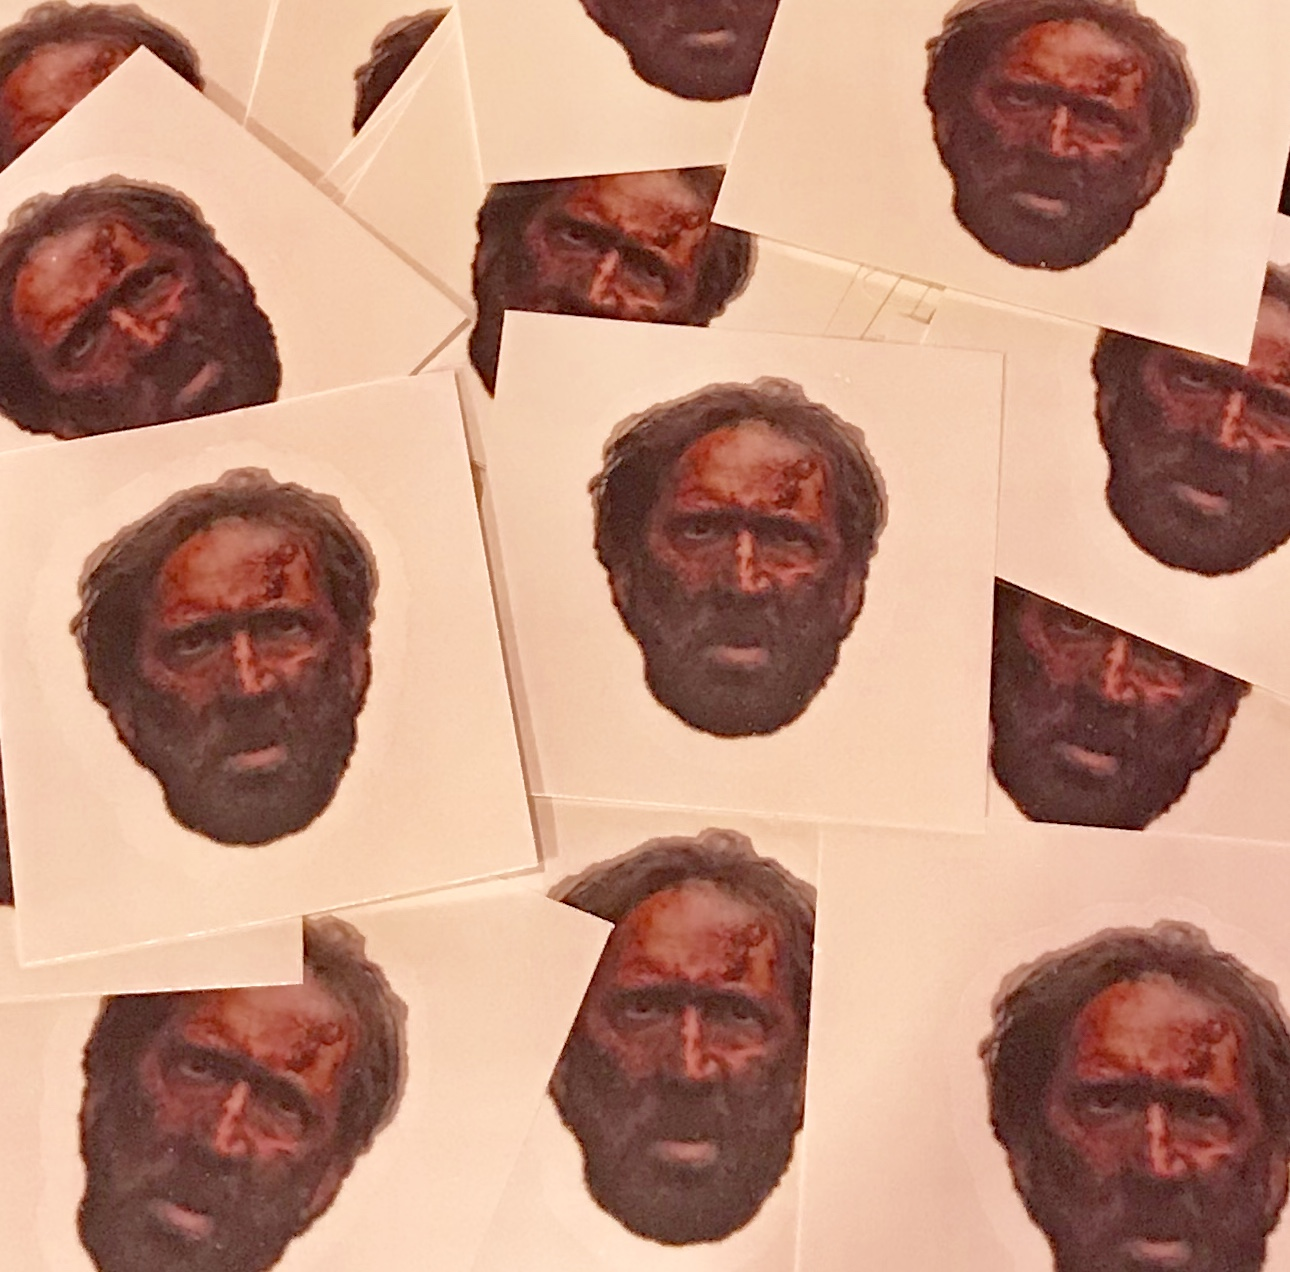 nic cage faces.jpeg